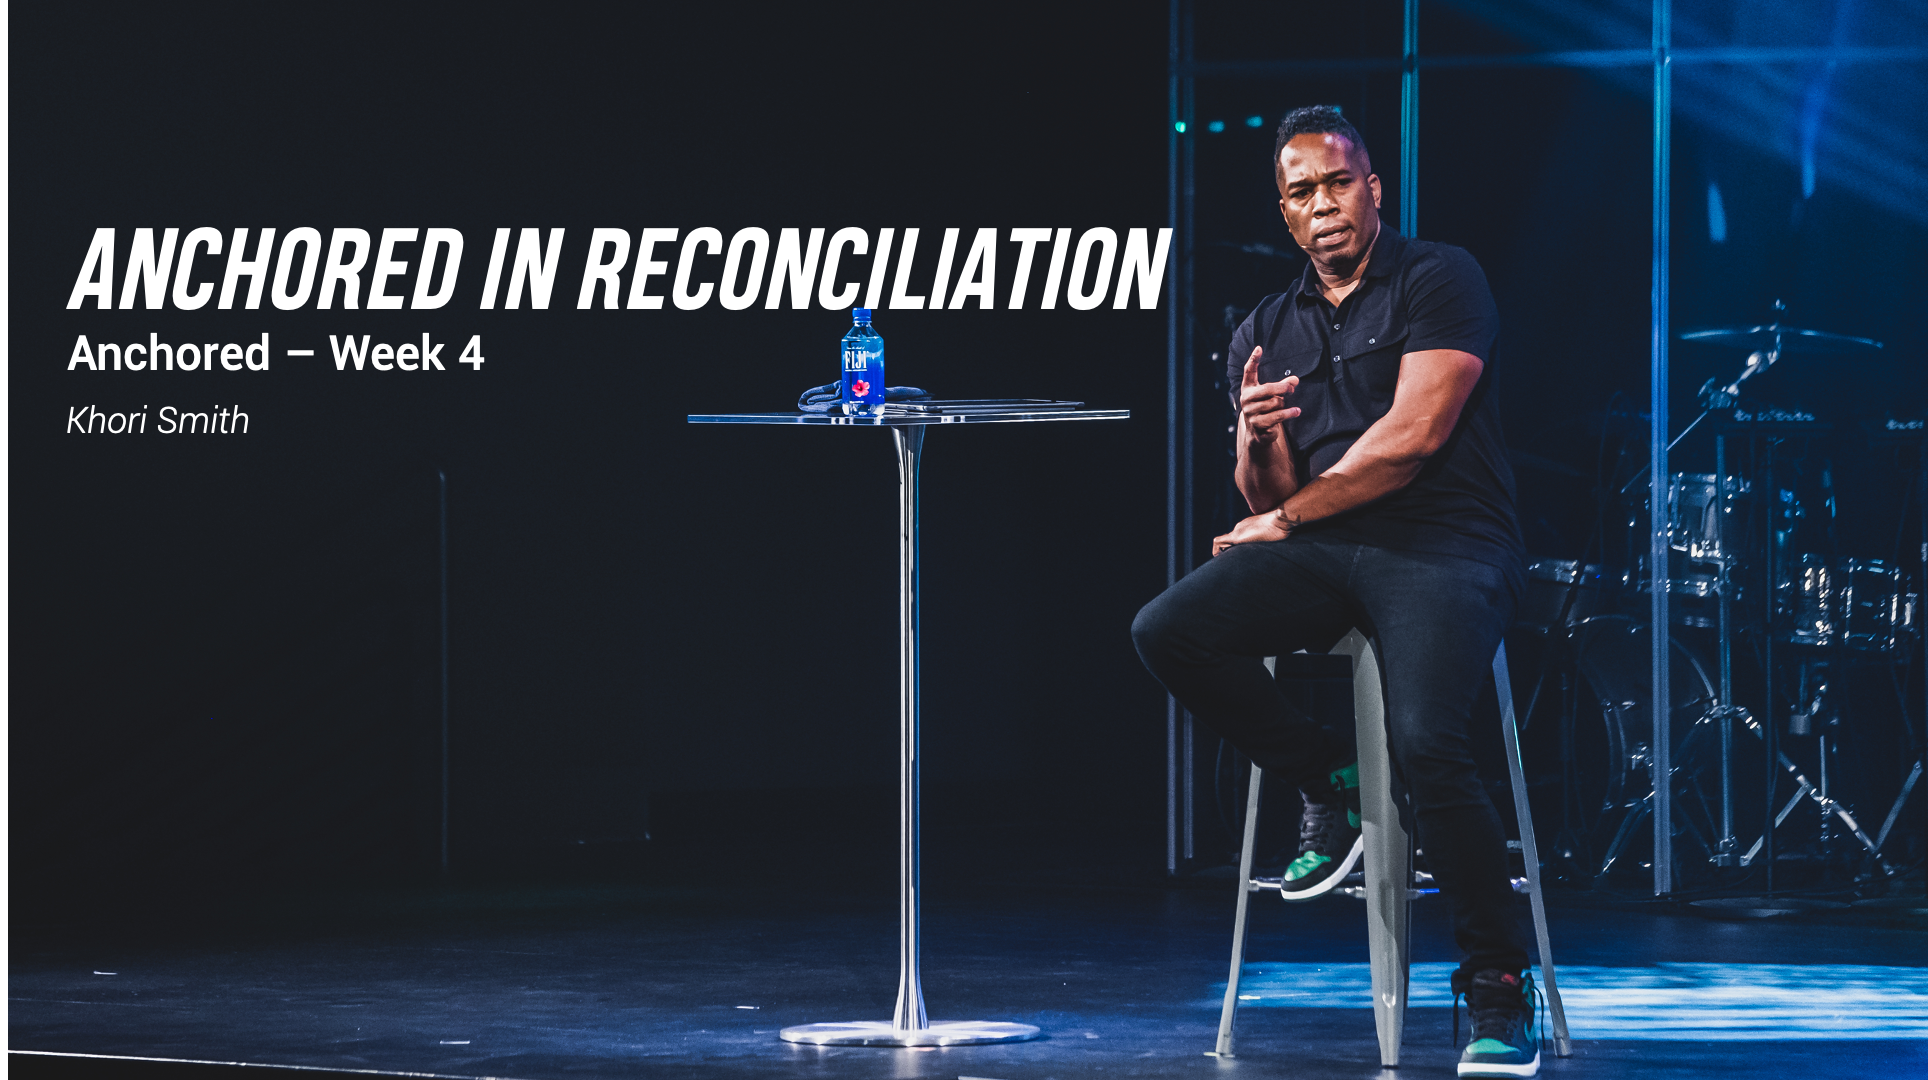 Anchored in Reconciliation Image